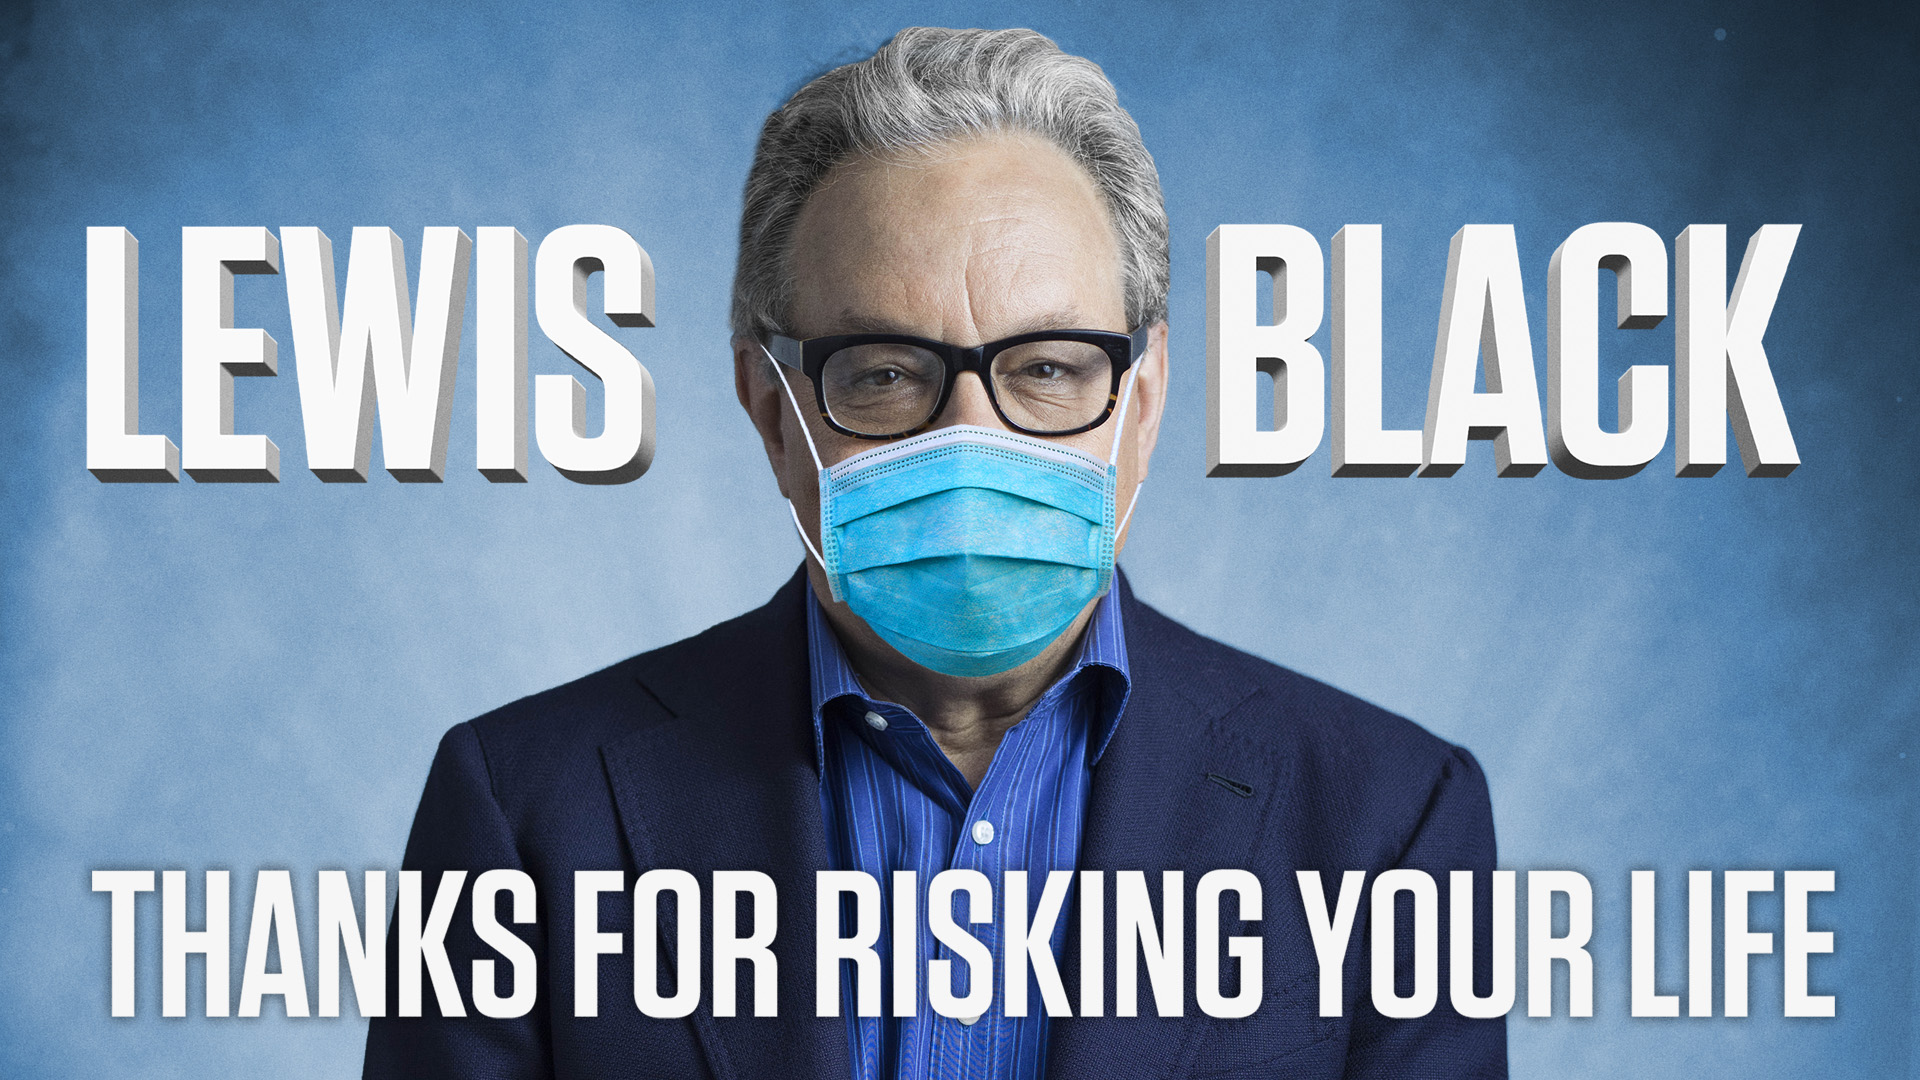 Lewis Black: Thanks for Risking Your Life